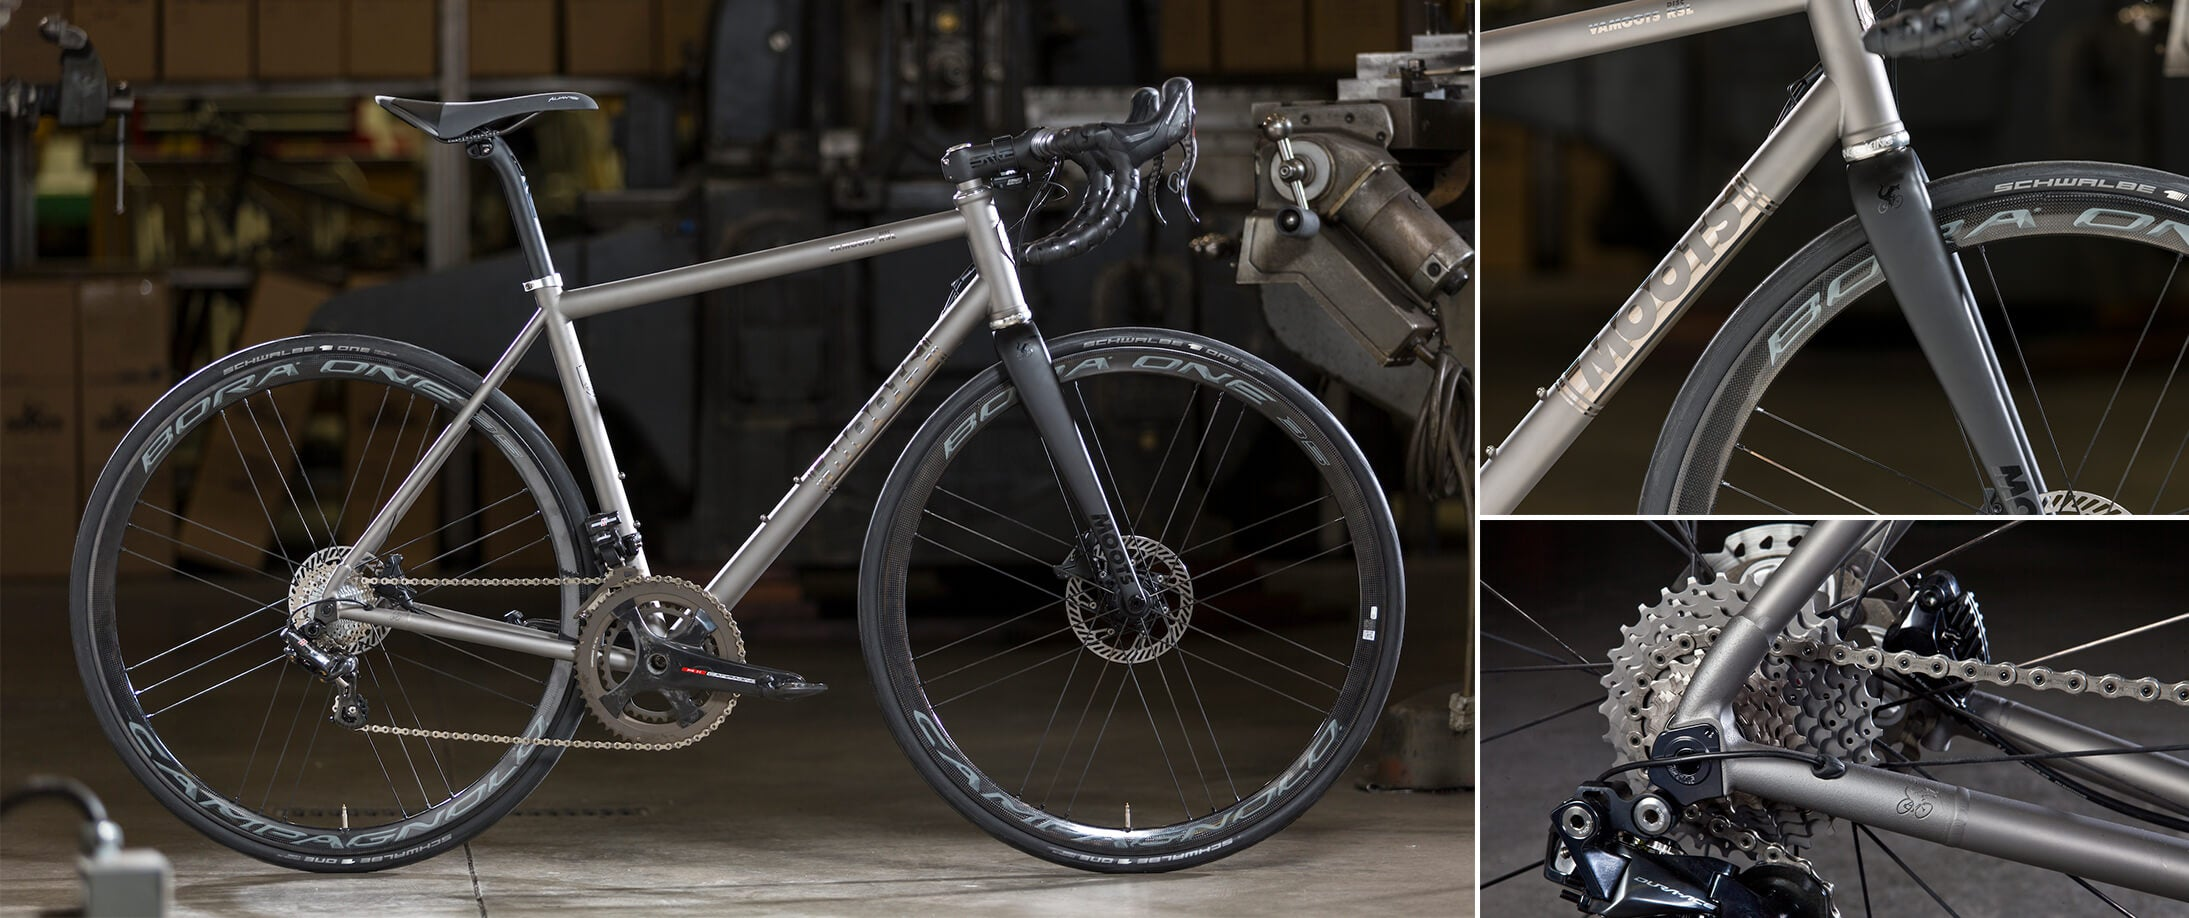 Moots RSL Disc - Contender Bicycles